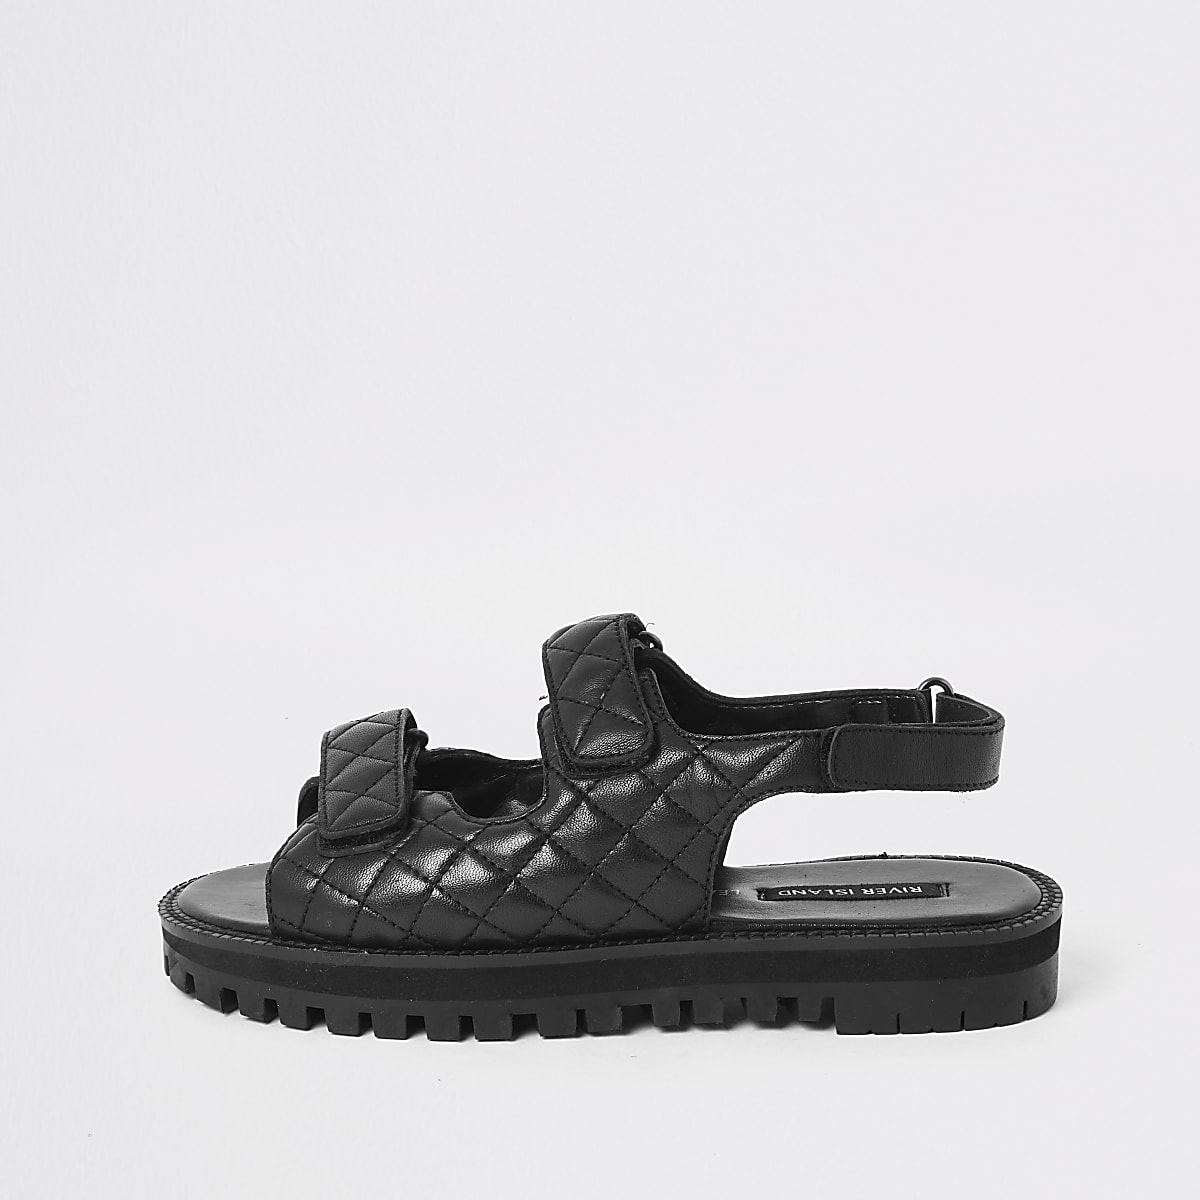 Black velcro cleated sandals